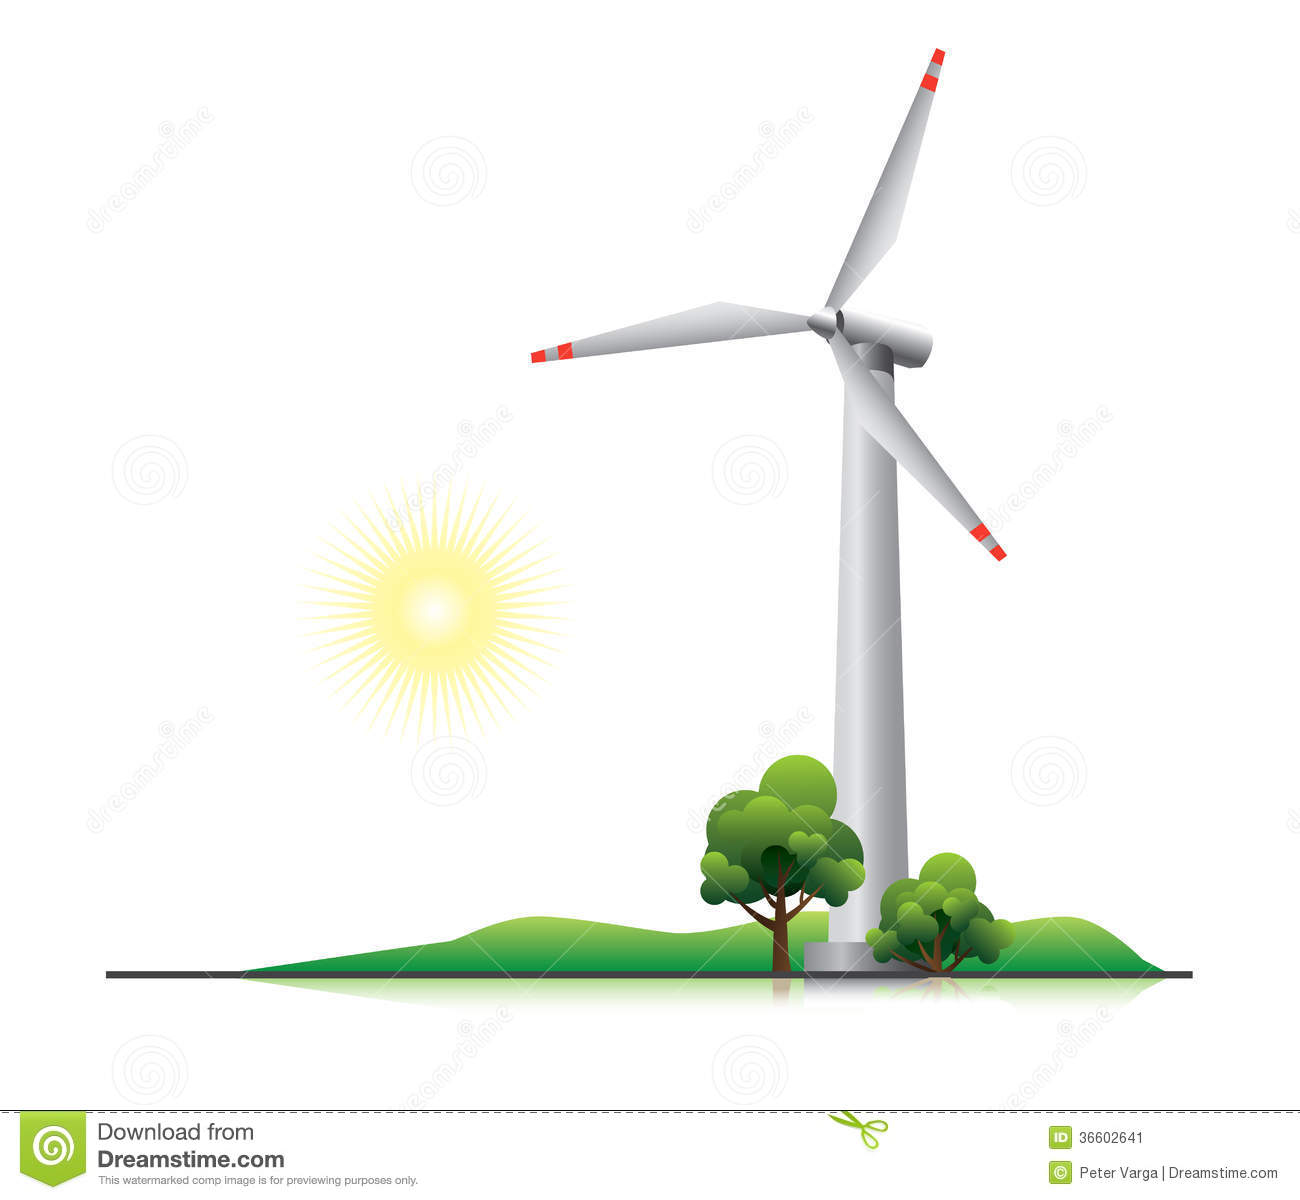 http://thumbs.dreamstime.com/z/wind-turbine-trees-little-hill-illustration-eps-vector-file-objects-separate-layers-36602641.jpg